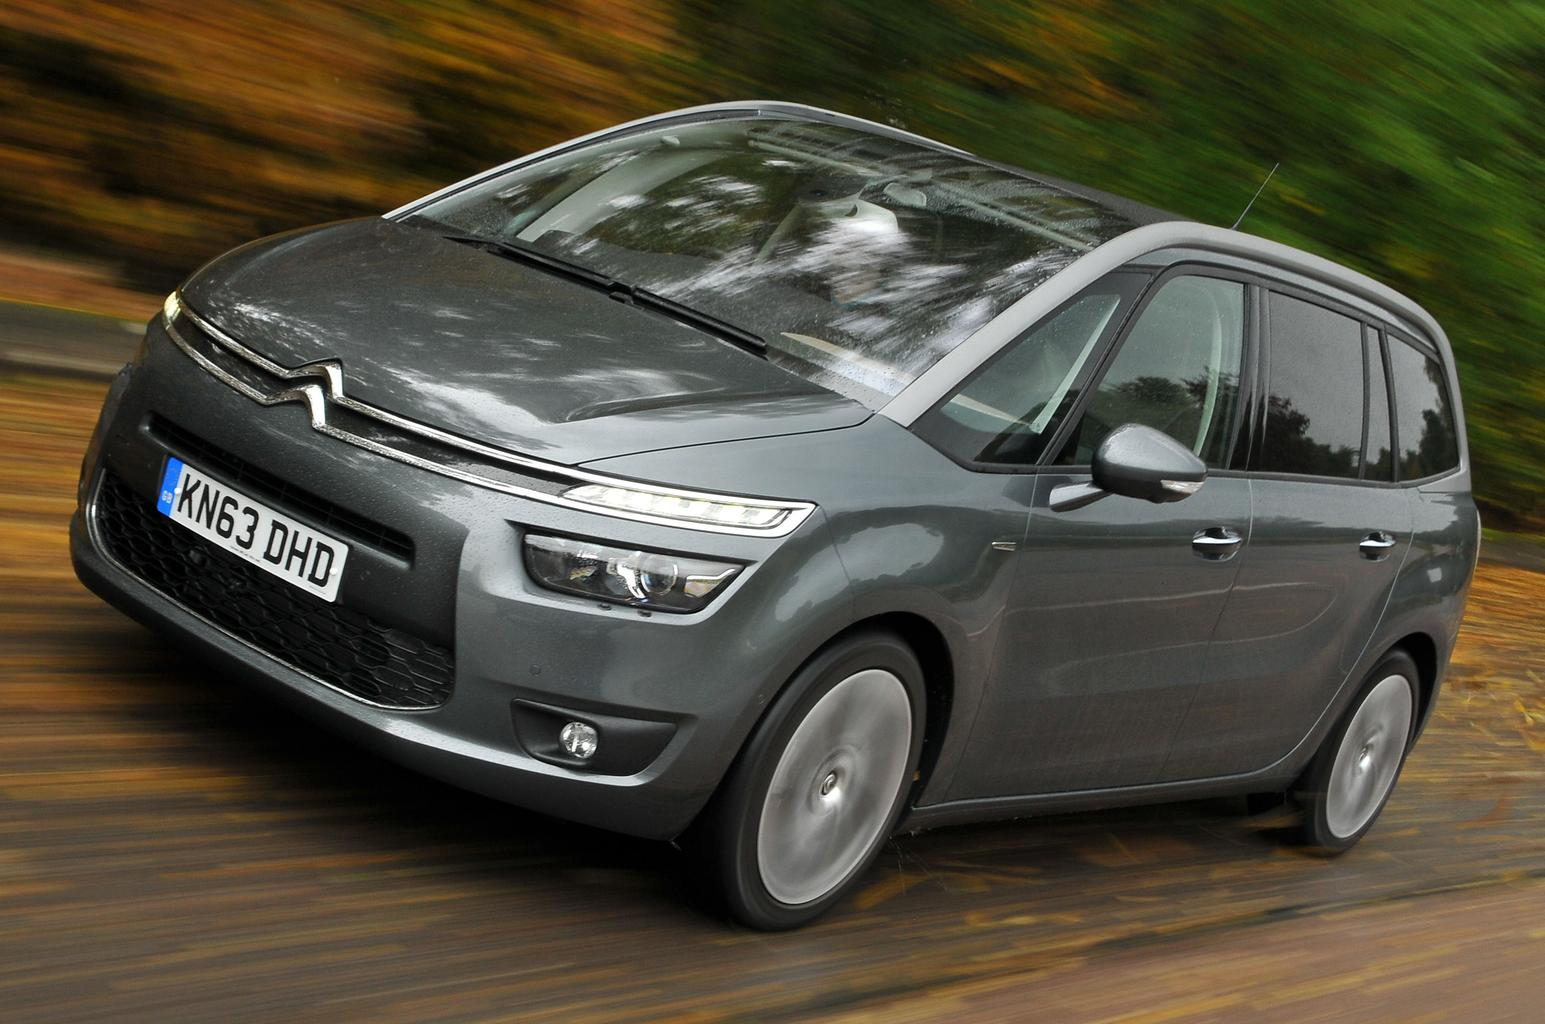 Top 10 used 7-seater cars (and the ones to avoid)